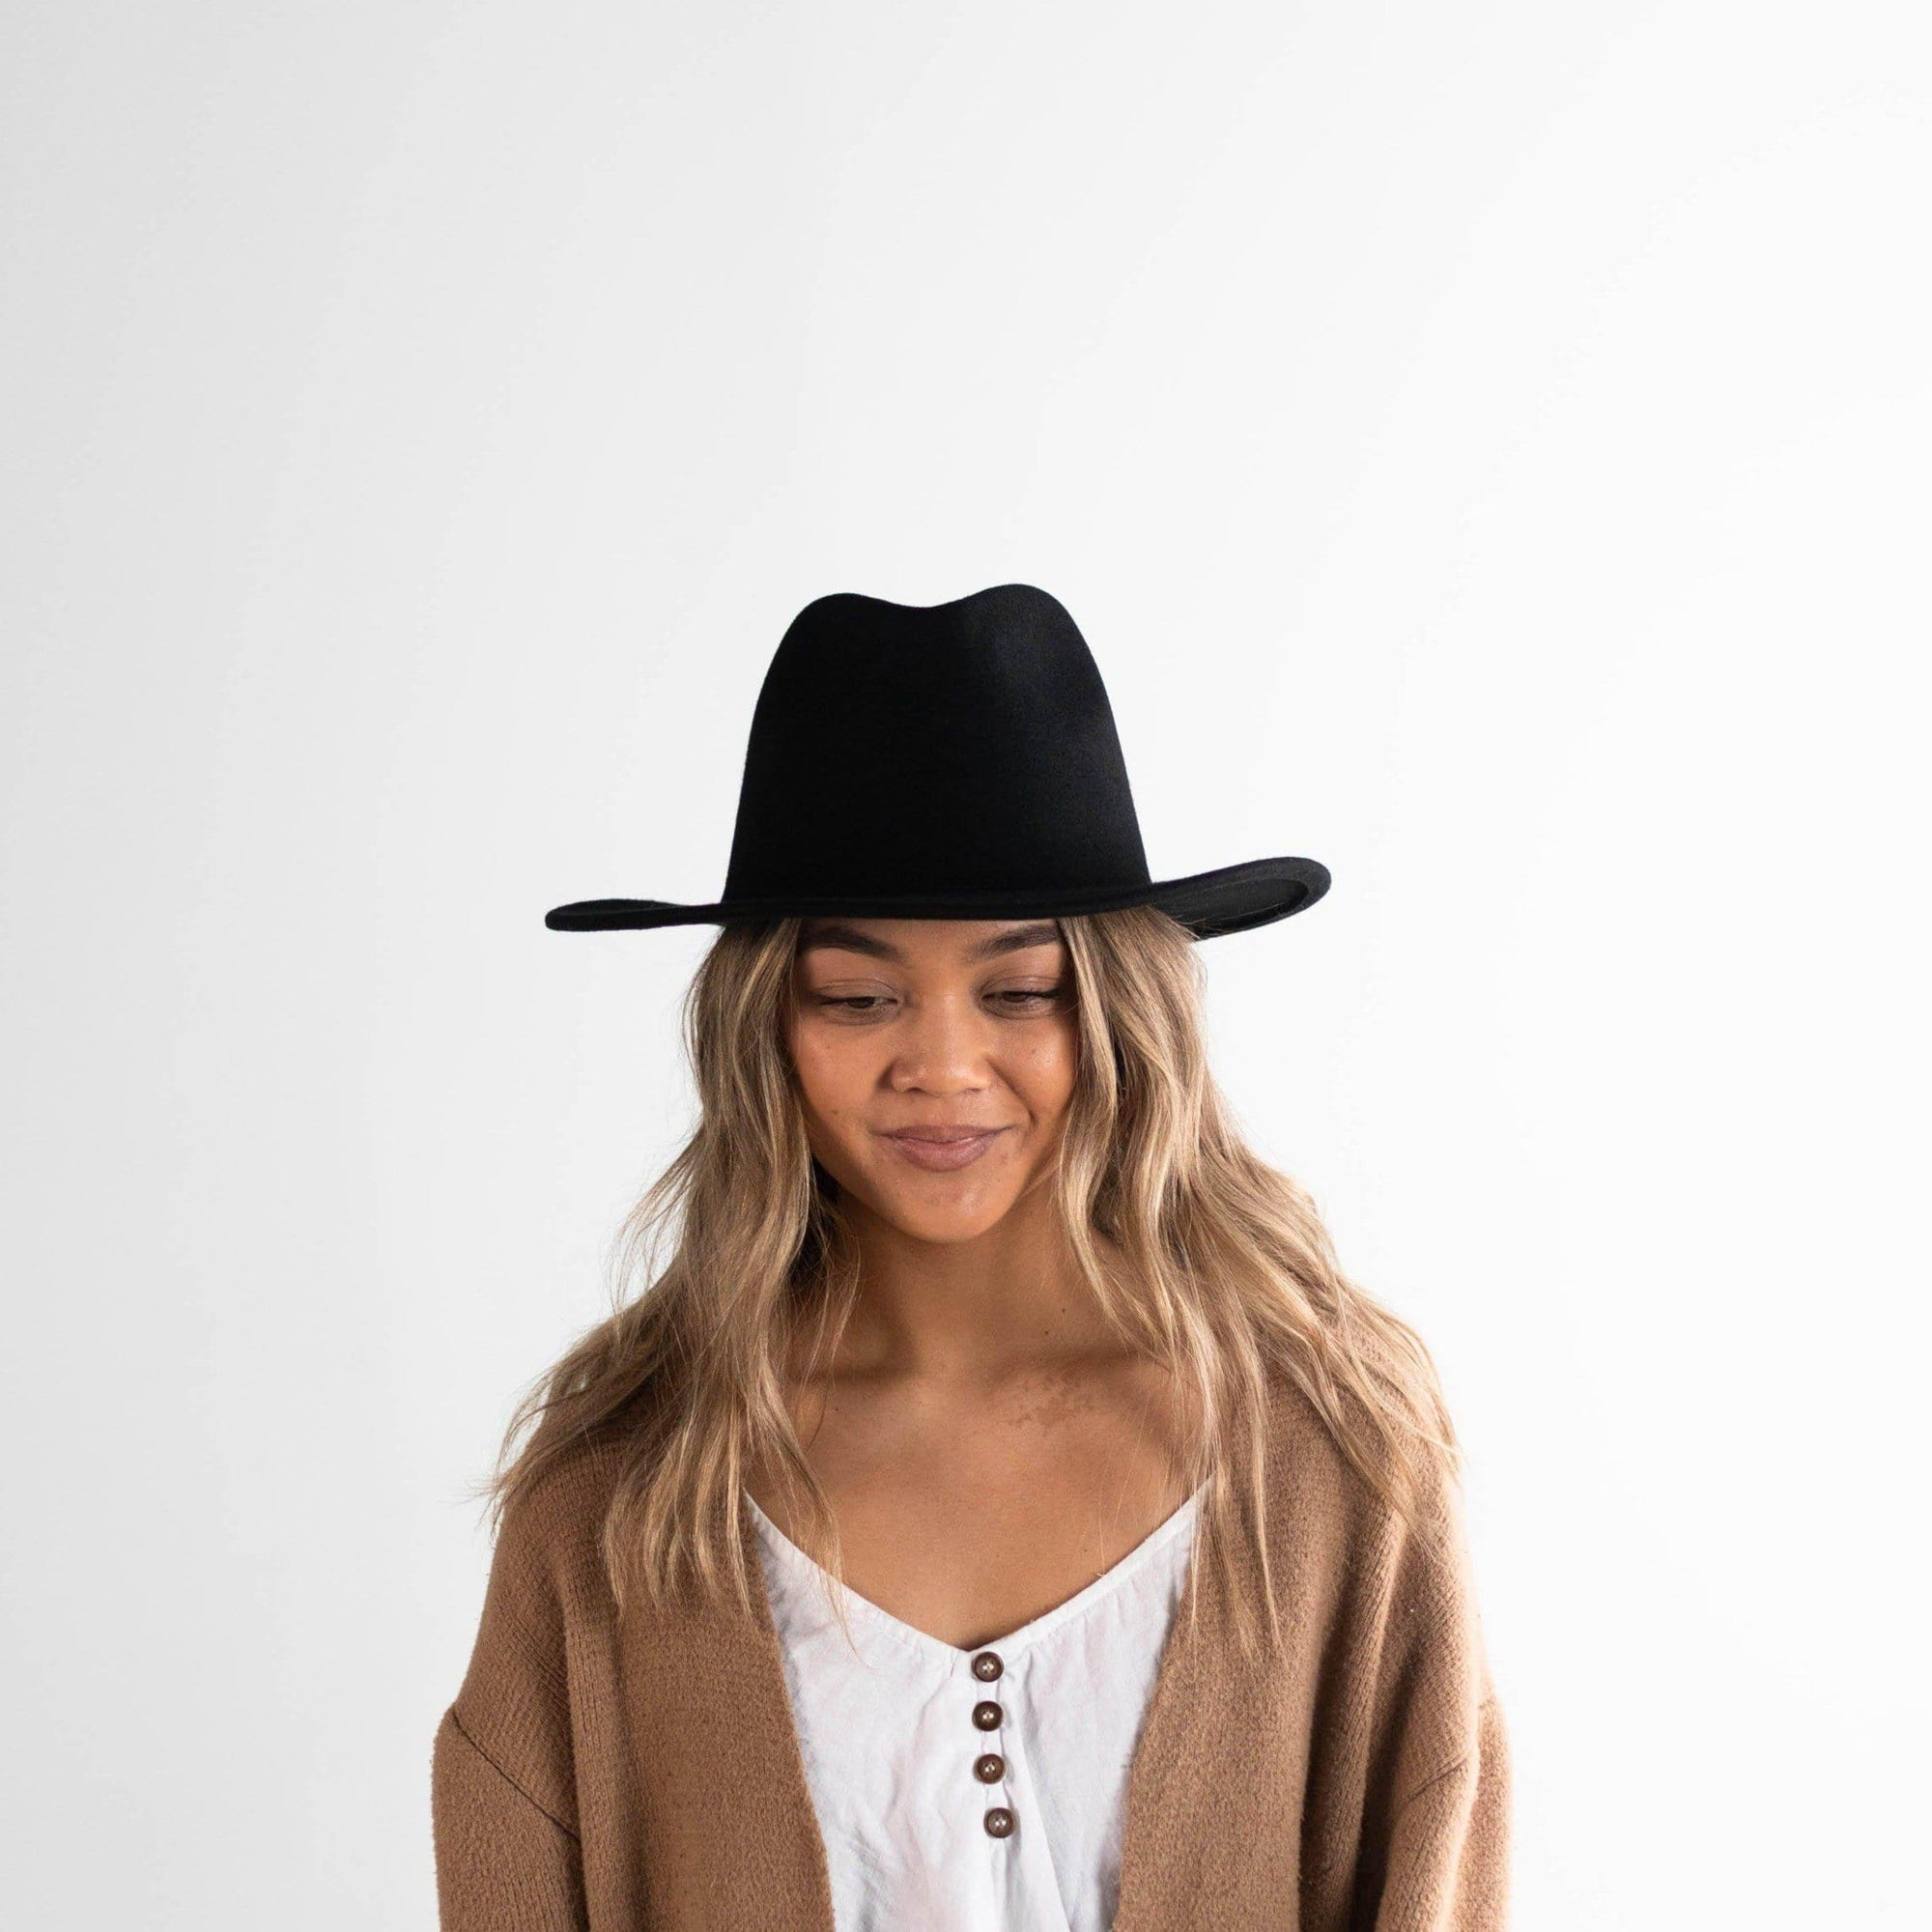 GIGI PIP Hats for Women- Leo Wavy Fedora - Black-Felt Hats